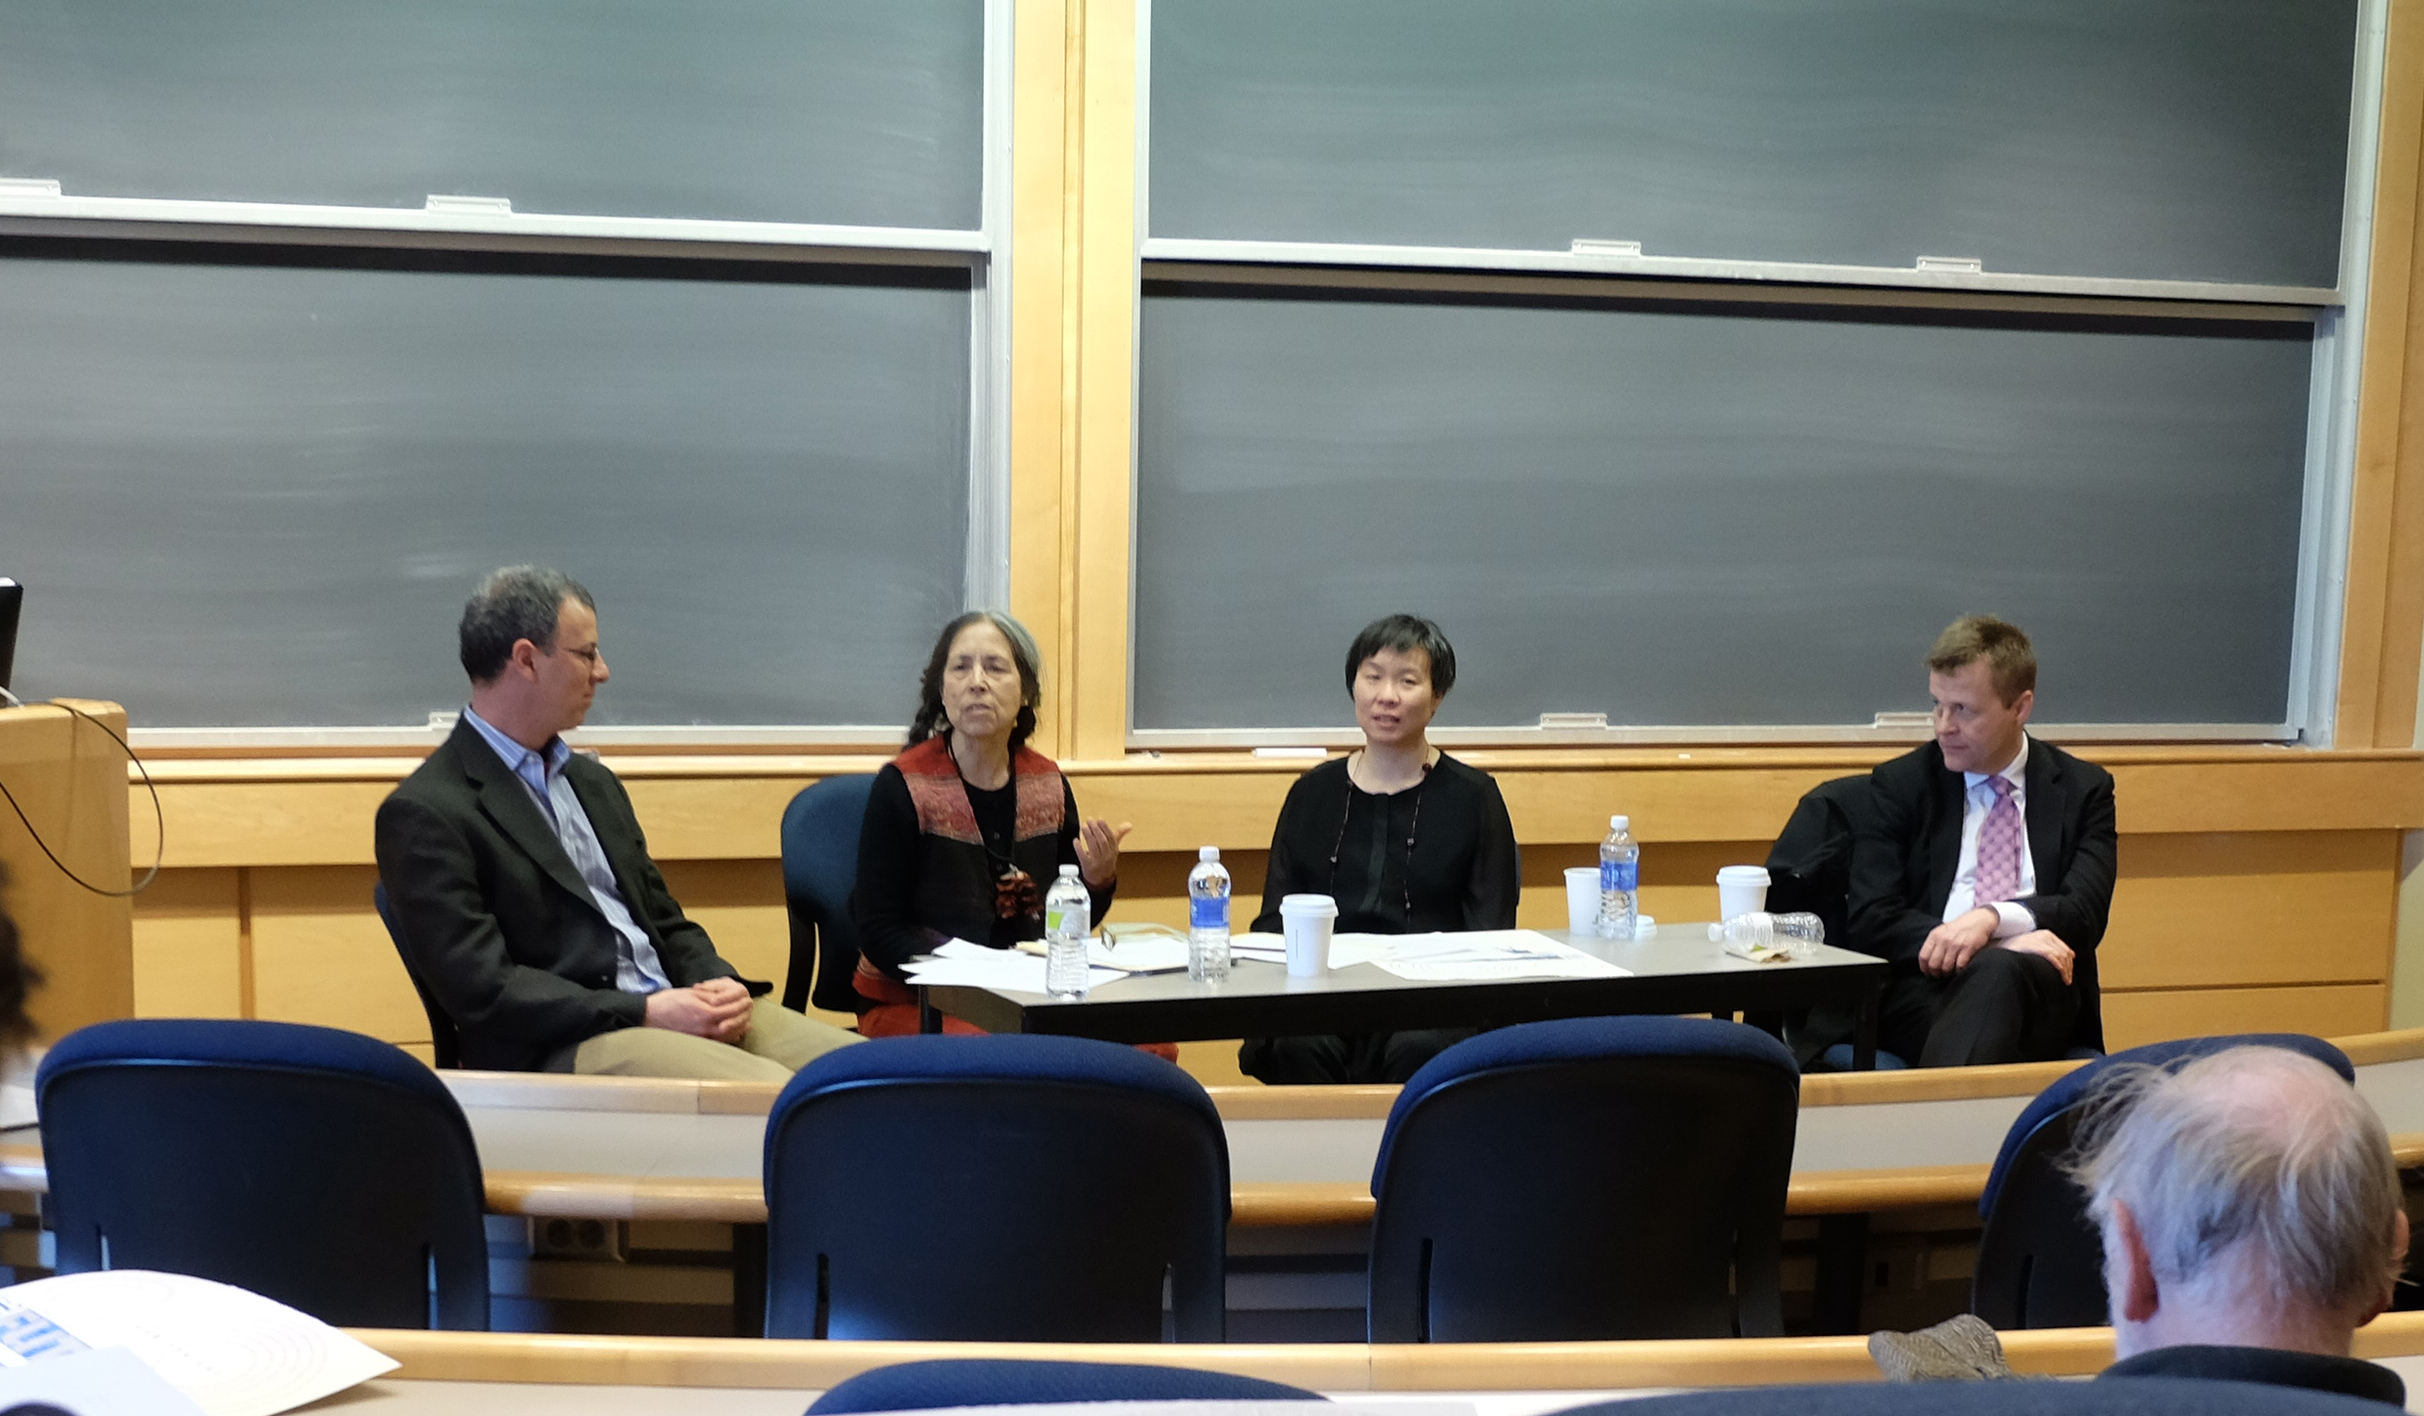 From left moderator Visiting Assistant Professor of English and Creative Writing Benj Widiss and International Festival Writers Cecilia Vicuña, Larissa Lai and Christian Bök.